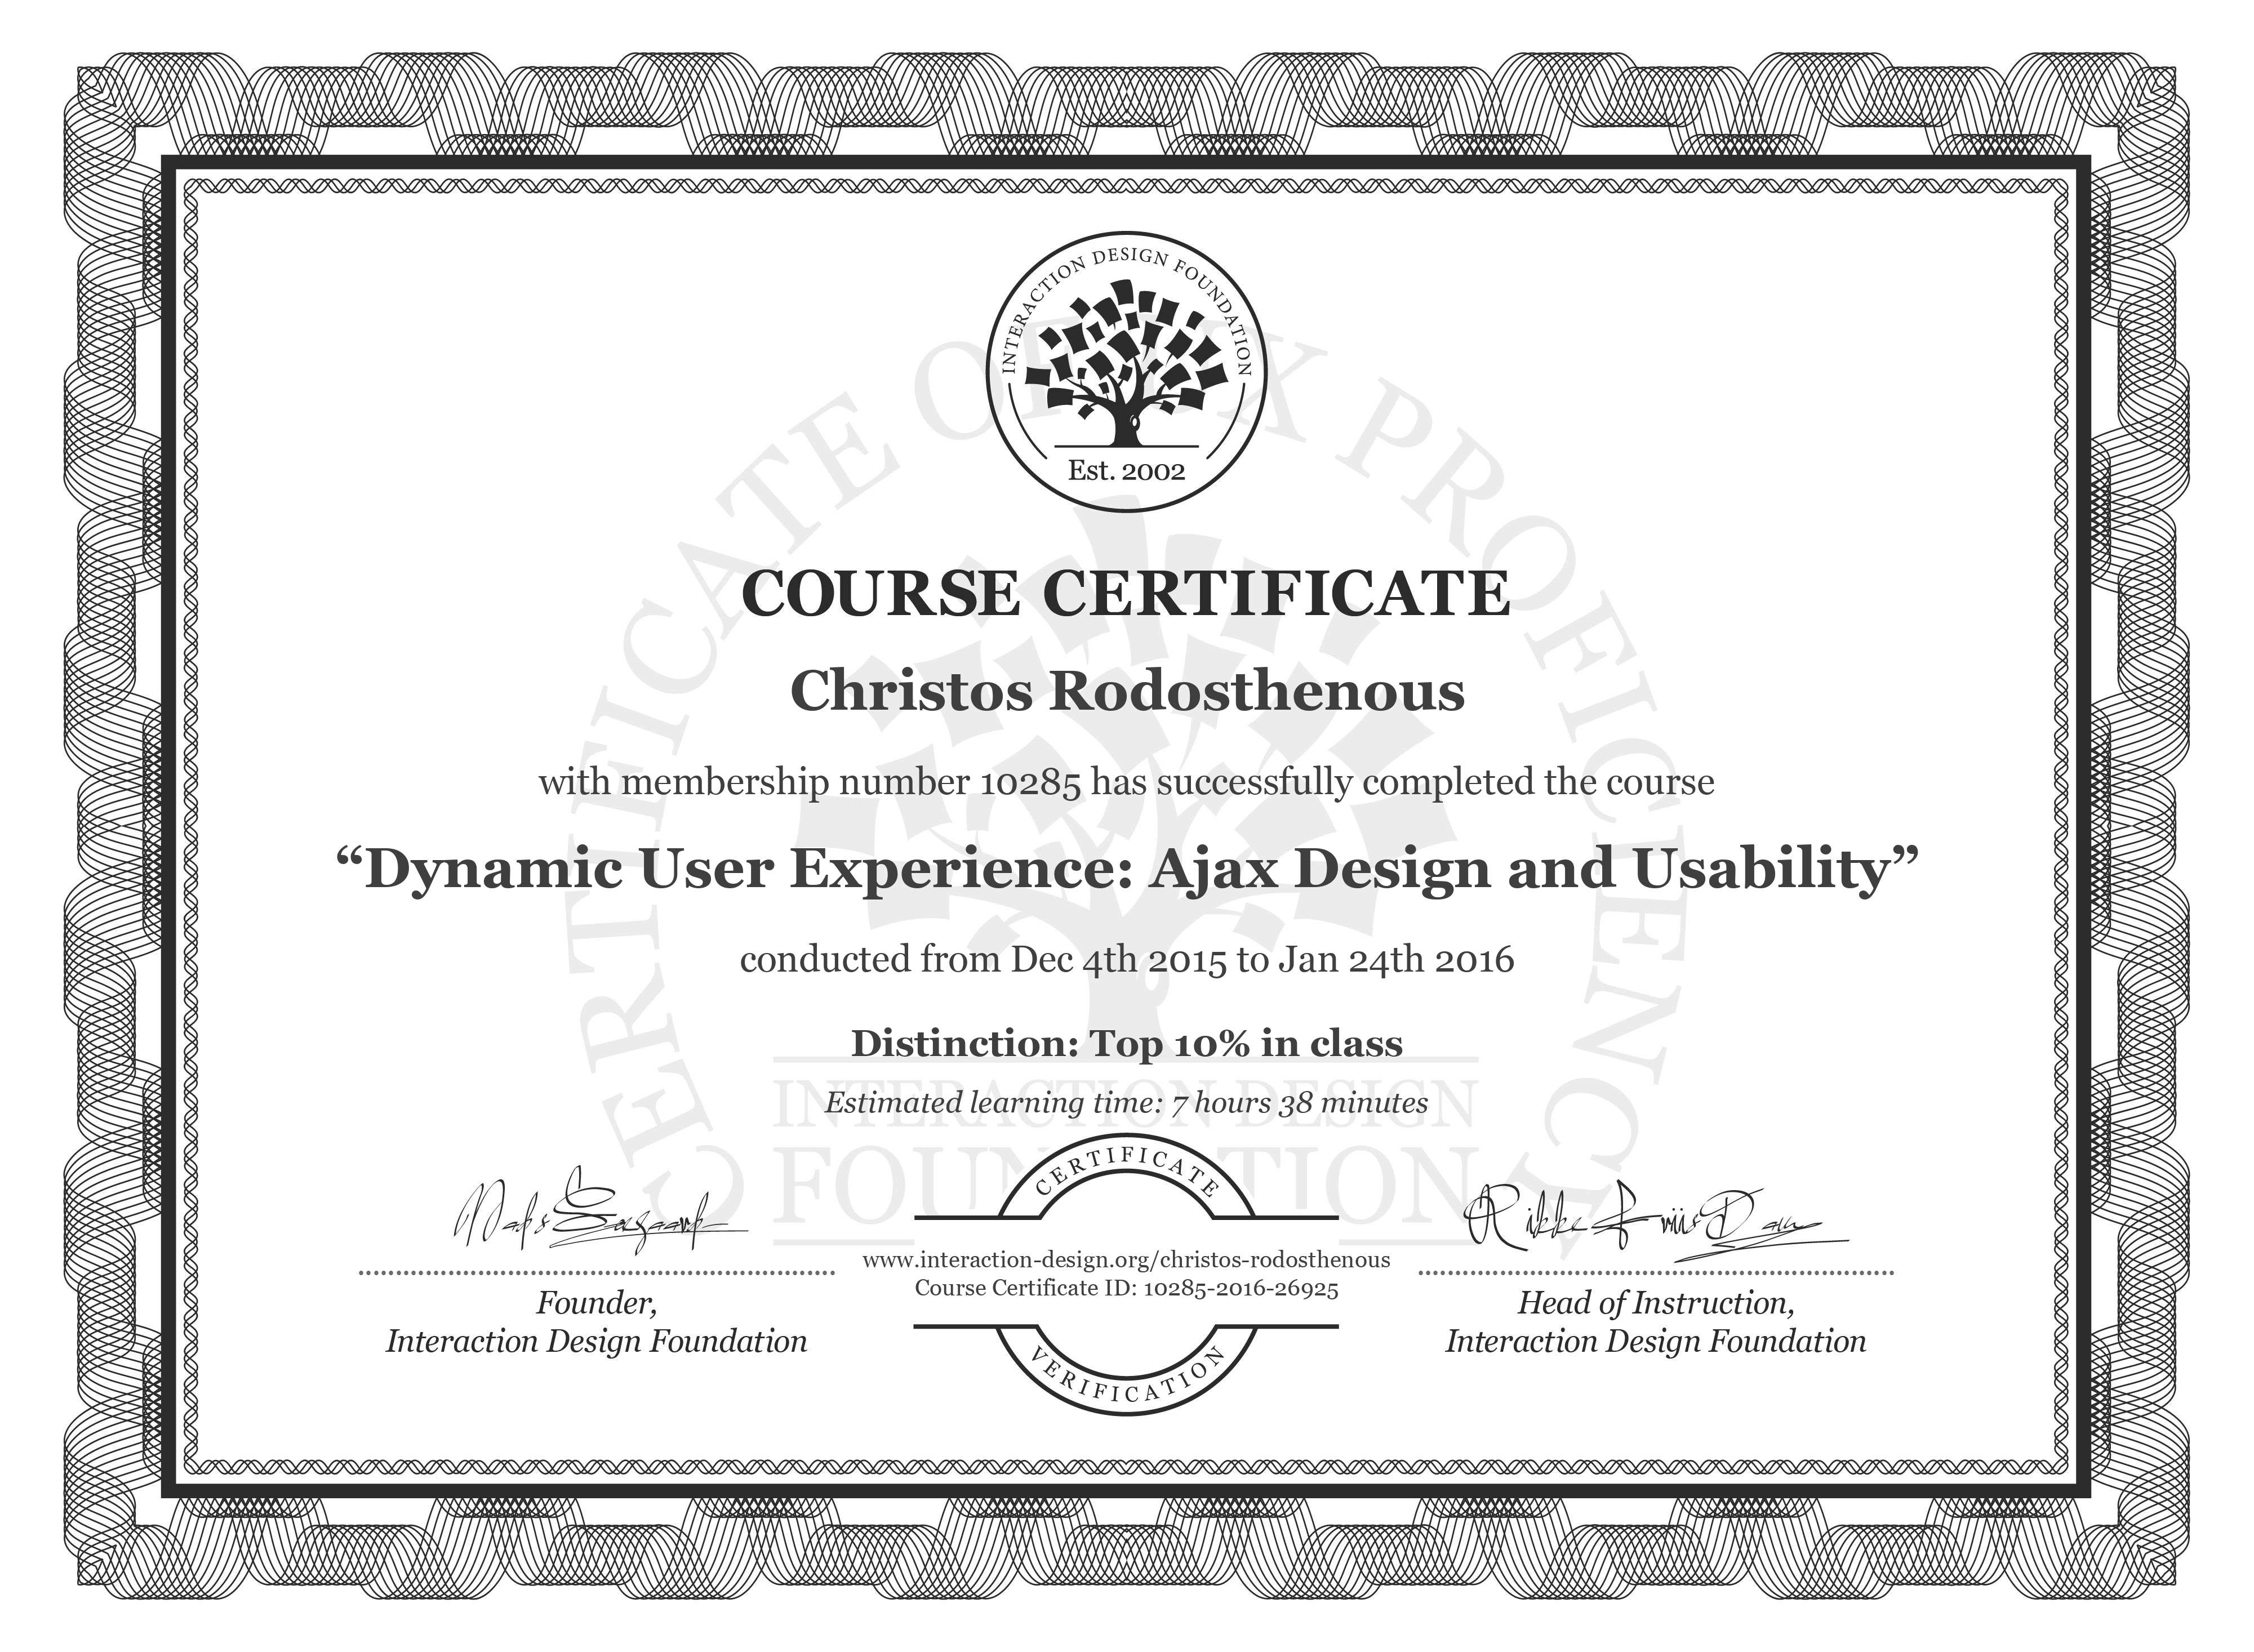 Christos Rodosthenous's Course Certificate: Dynamic User Experience: Ajax Design and Usability